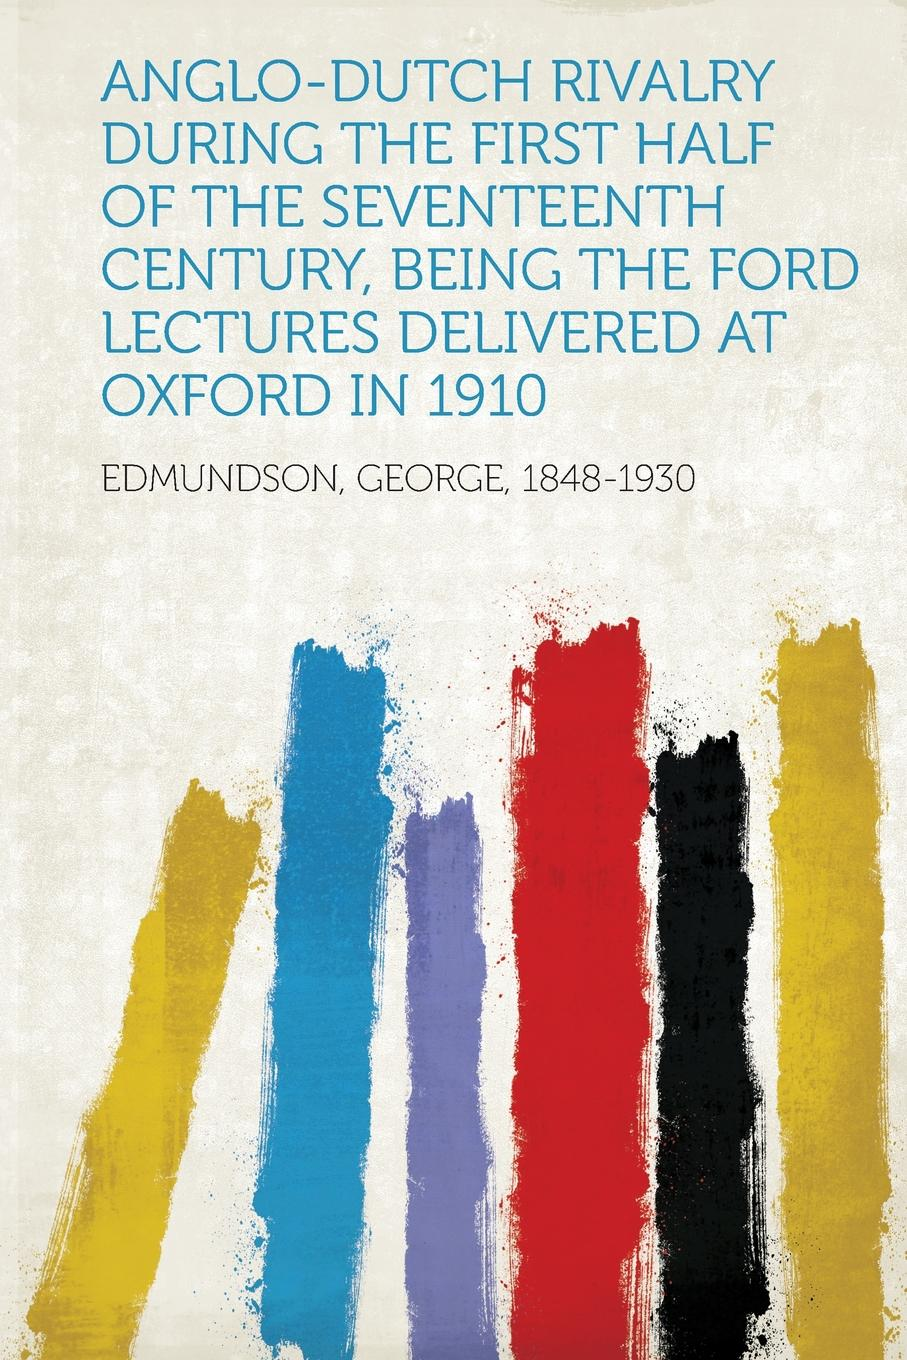 Фото - Edmundson George 1848-1930 Anglo-Dutch Rivalry During the First Half of the Seventeenth Century, Being the Ford Lectures Delivered at Oxford in 1910 edmundson george anglo dutch rivalry during the first half of the seventeenth century